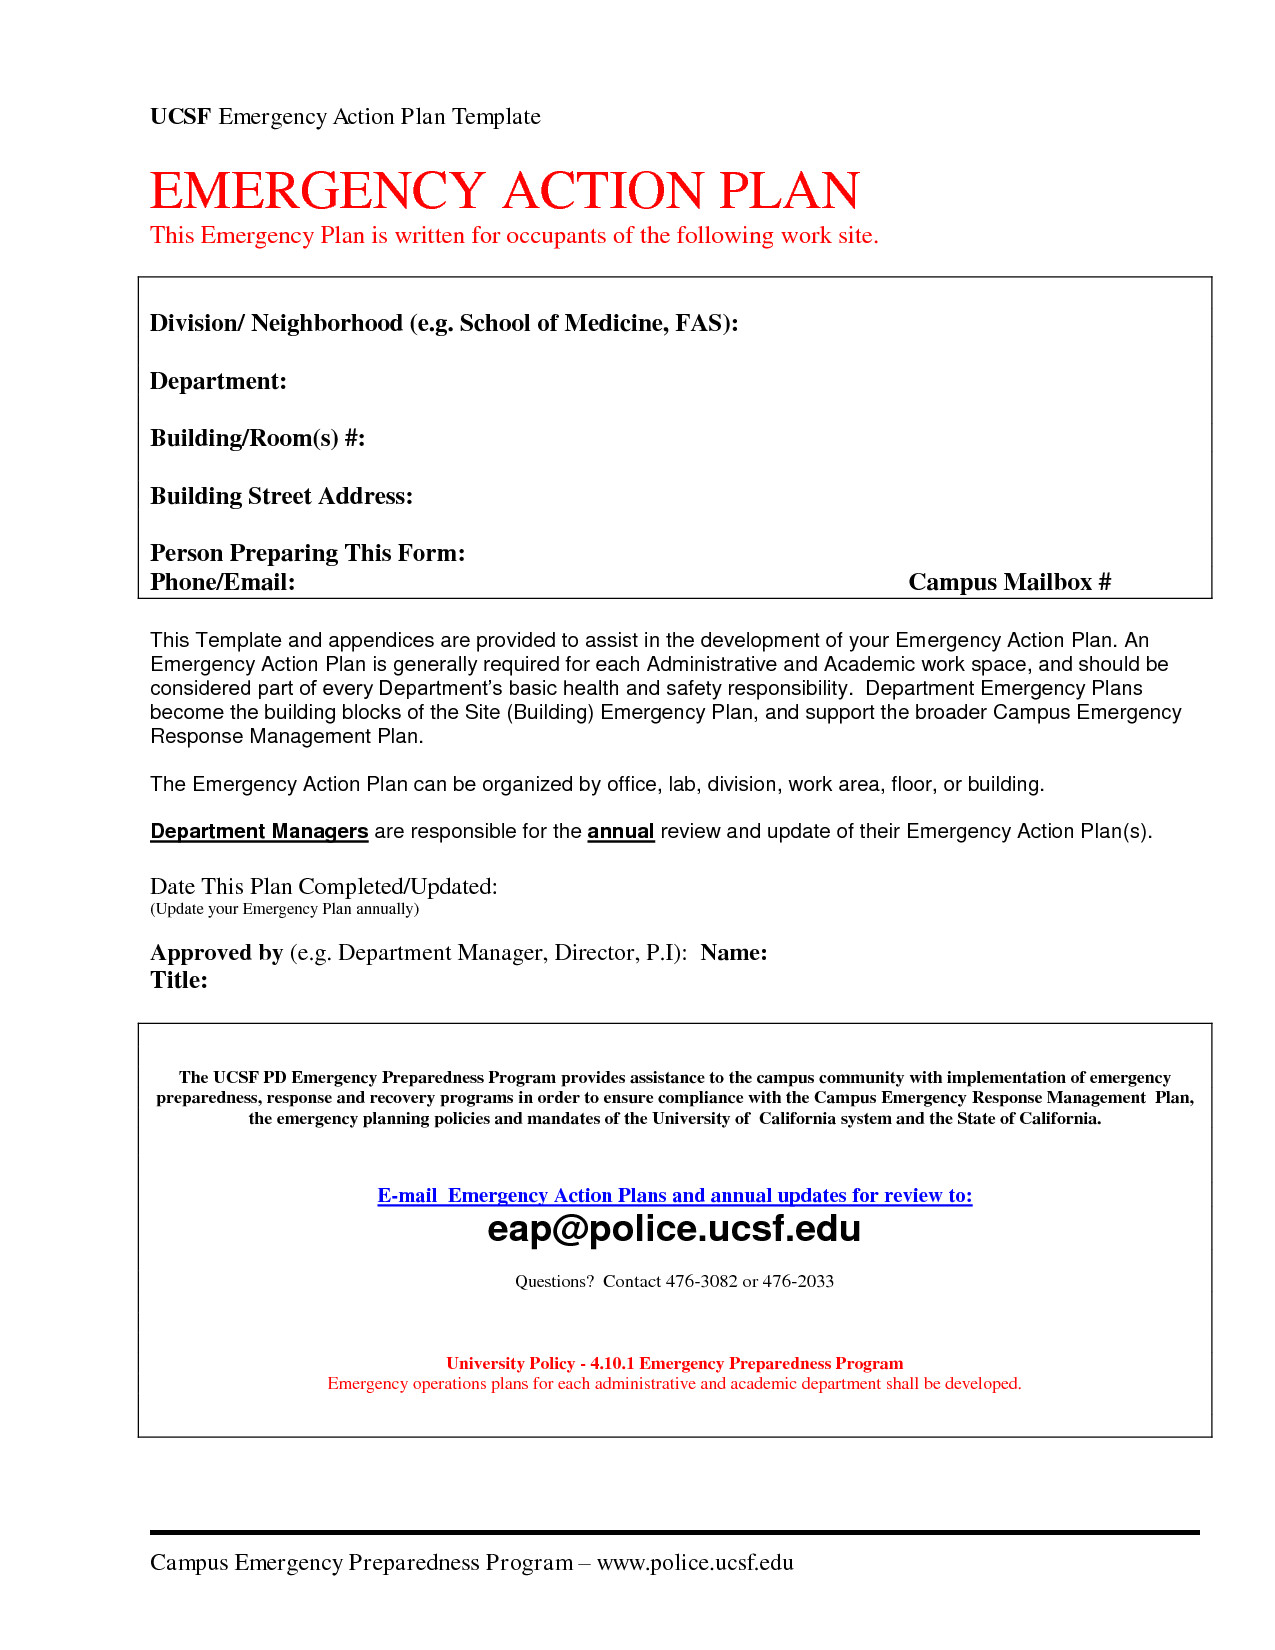 Padi Emergency Action Plan Template Emergency Action Plan Template Cyberuse